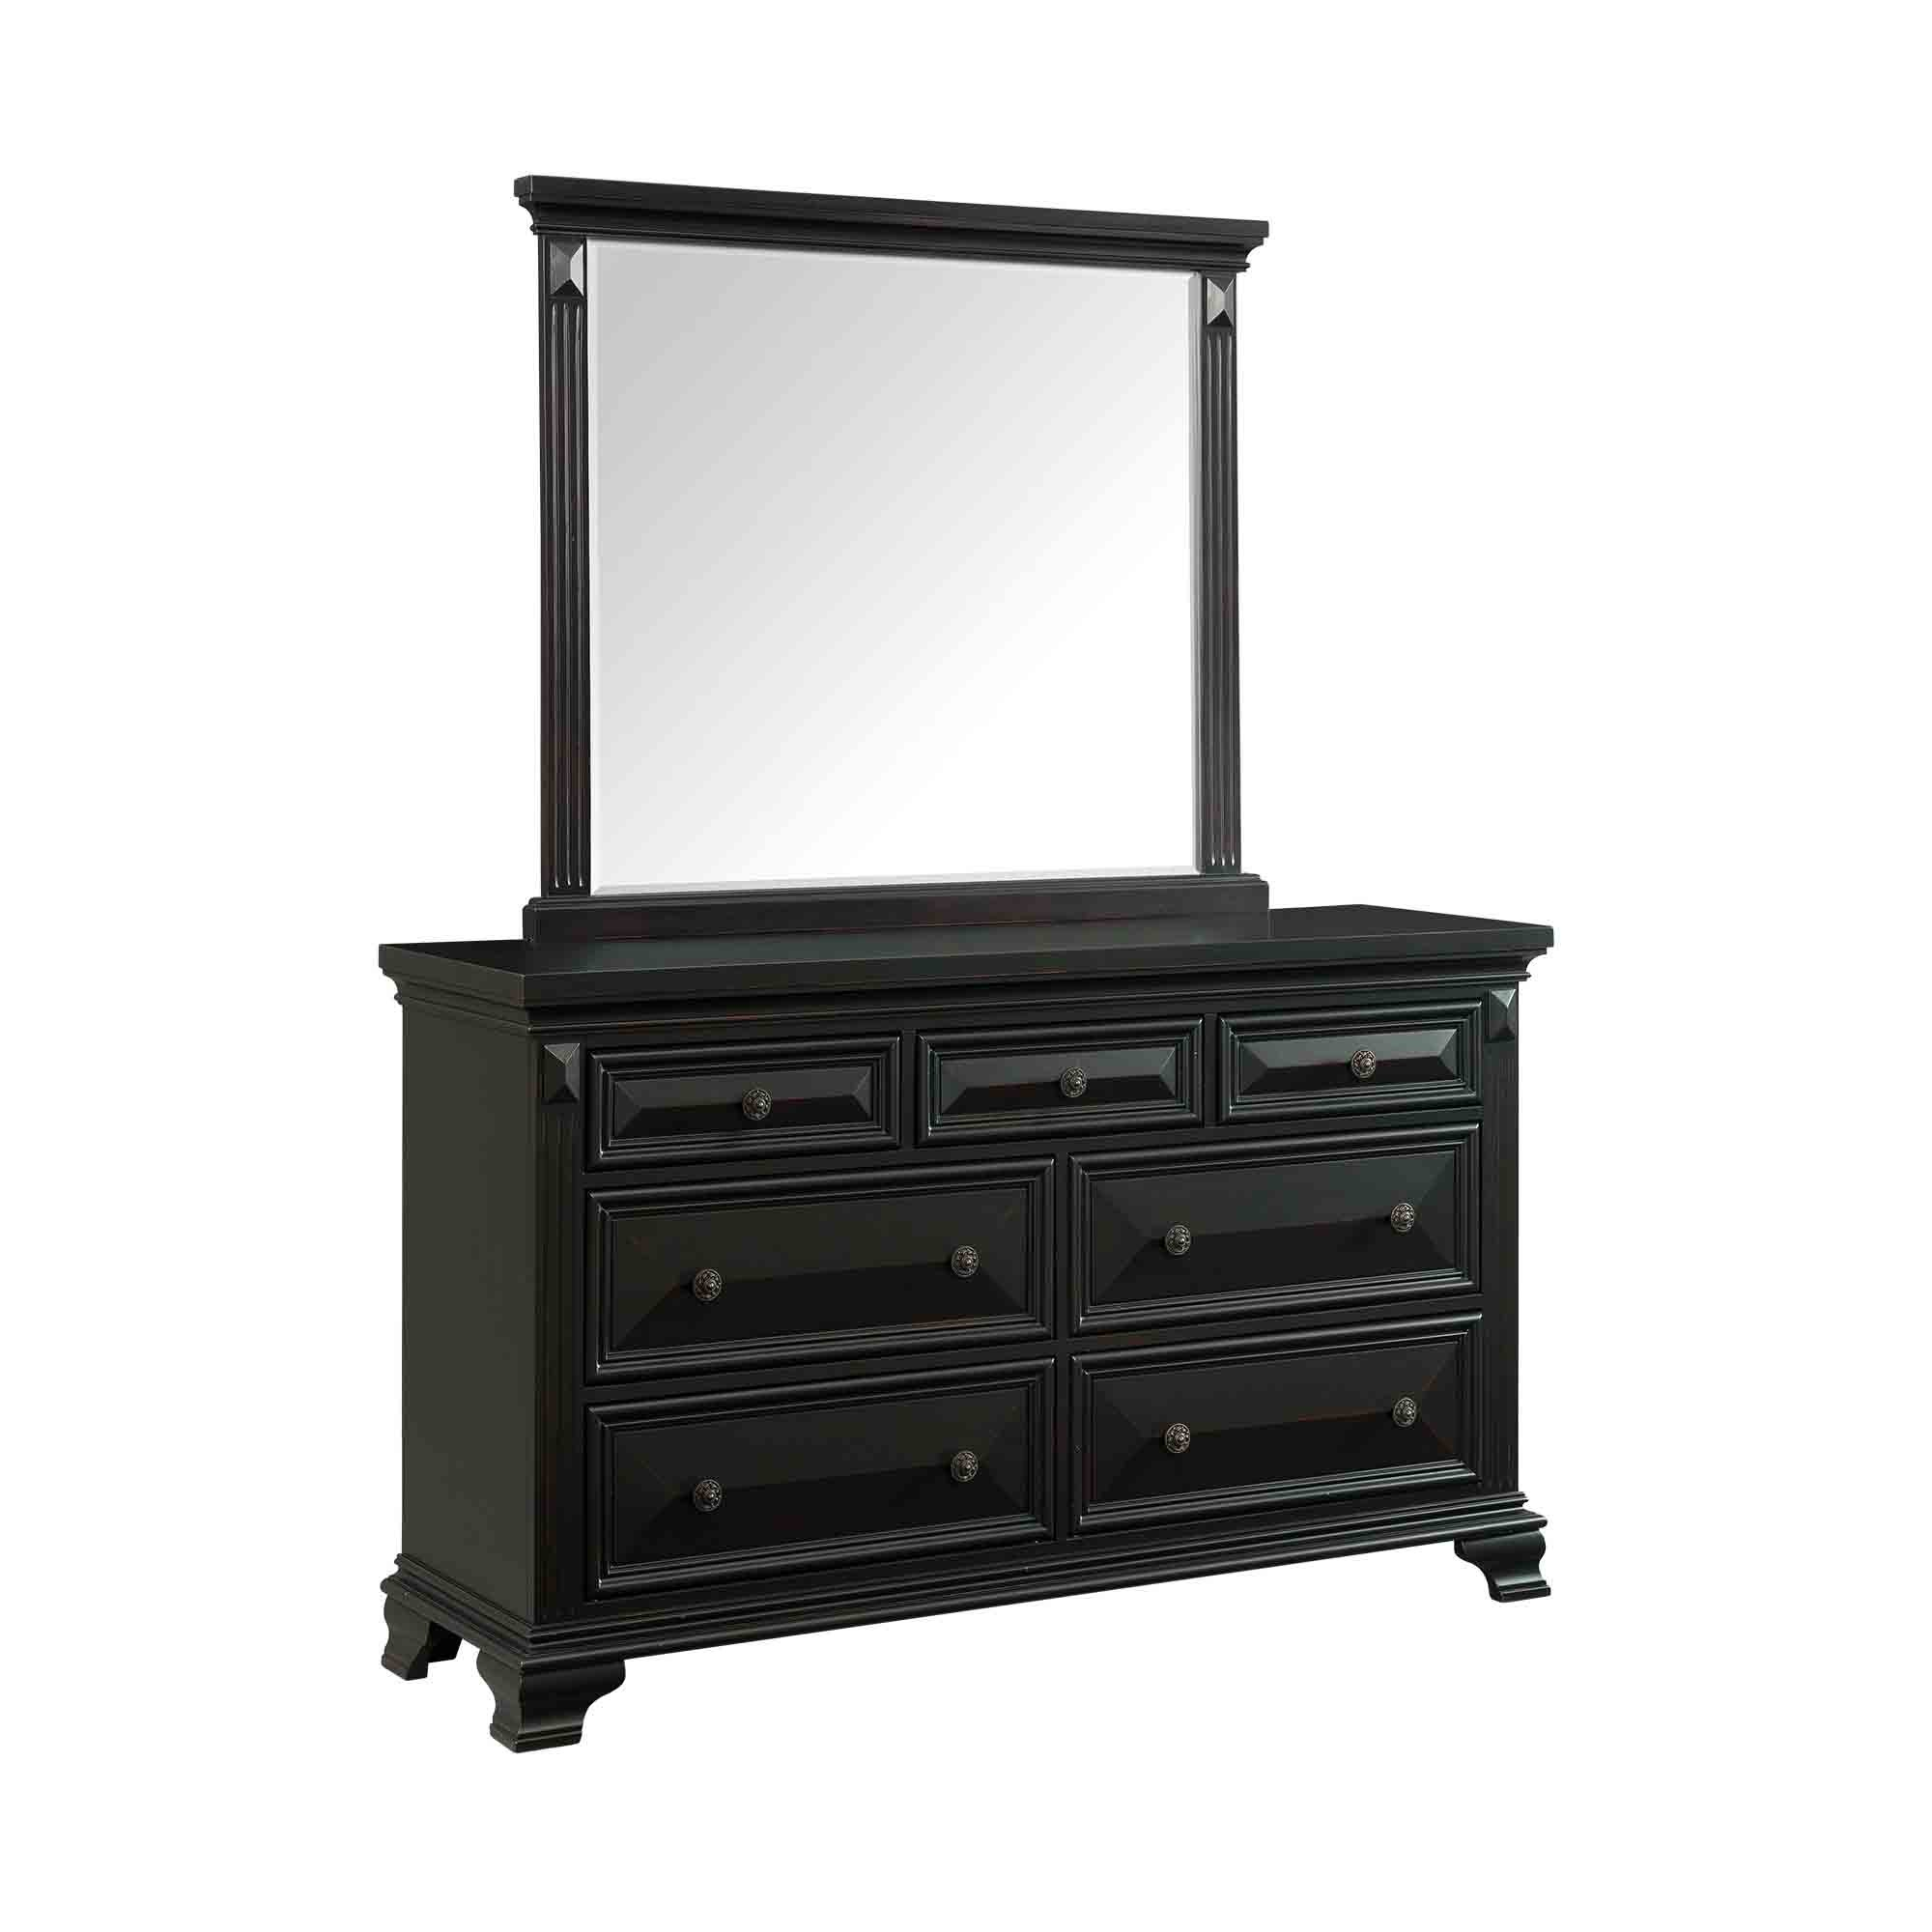 Calloway Bedroom on Mor Furniture Dresser With Mirror